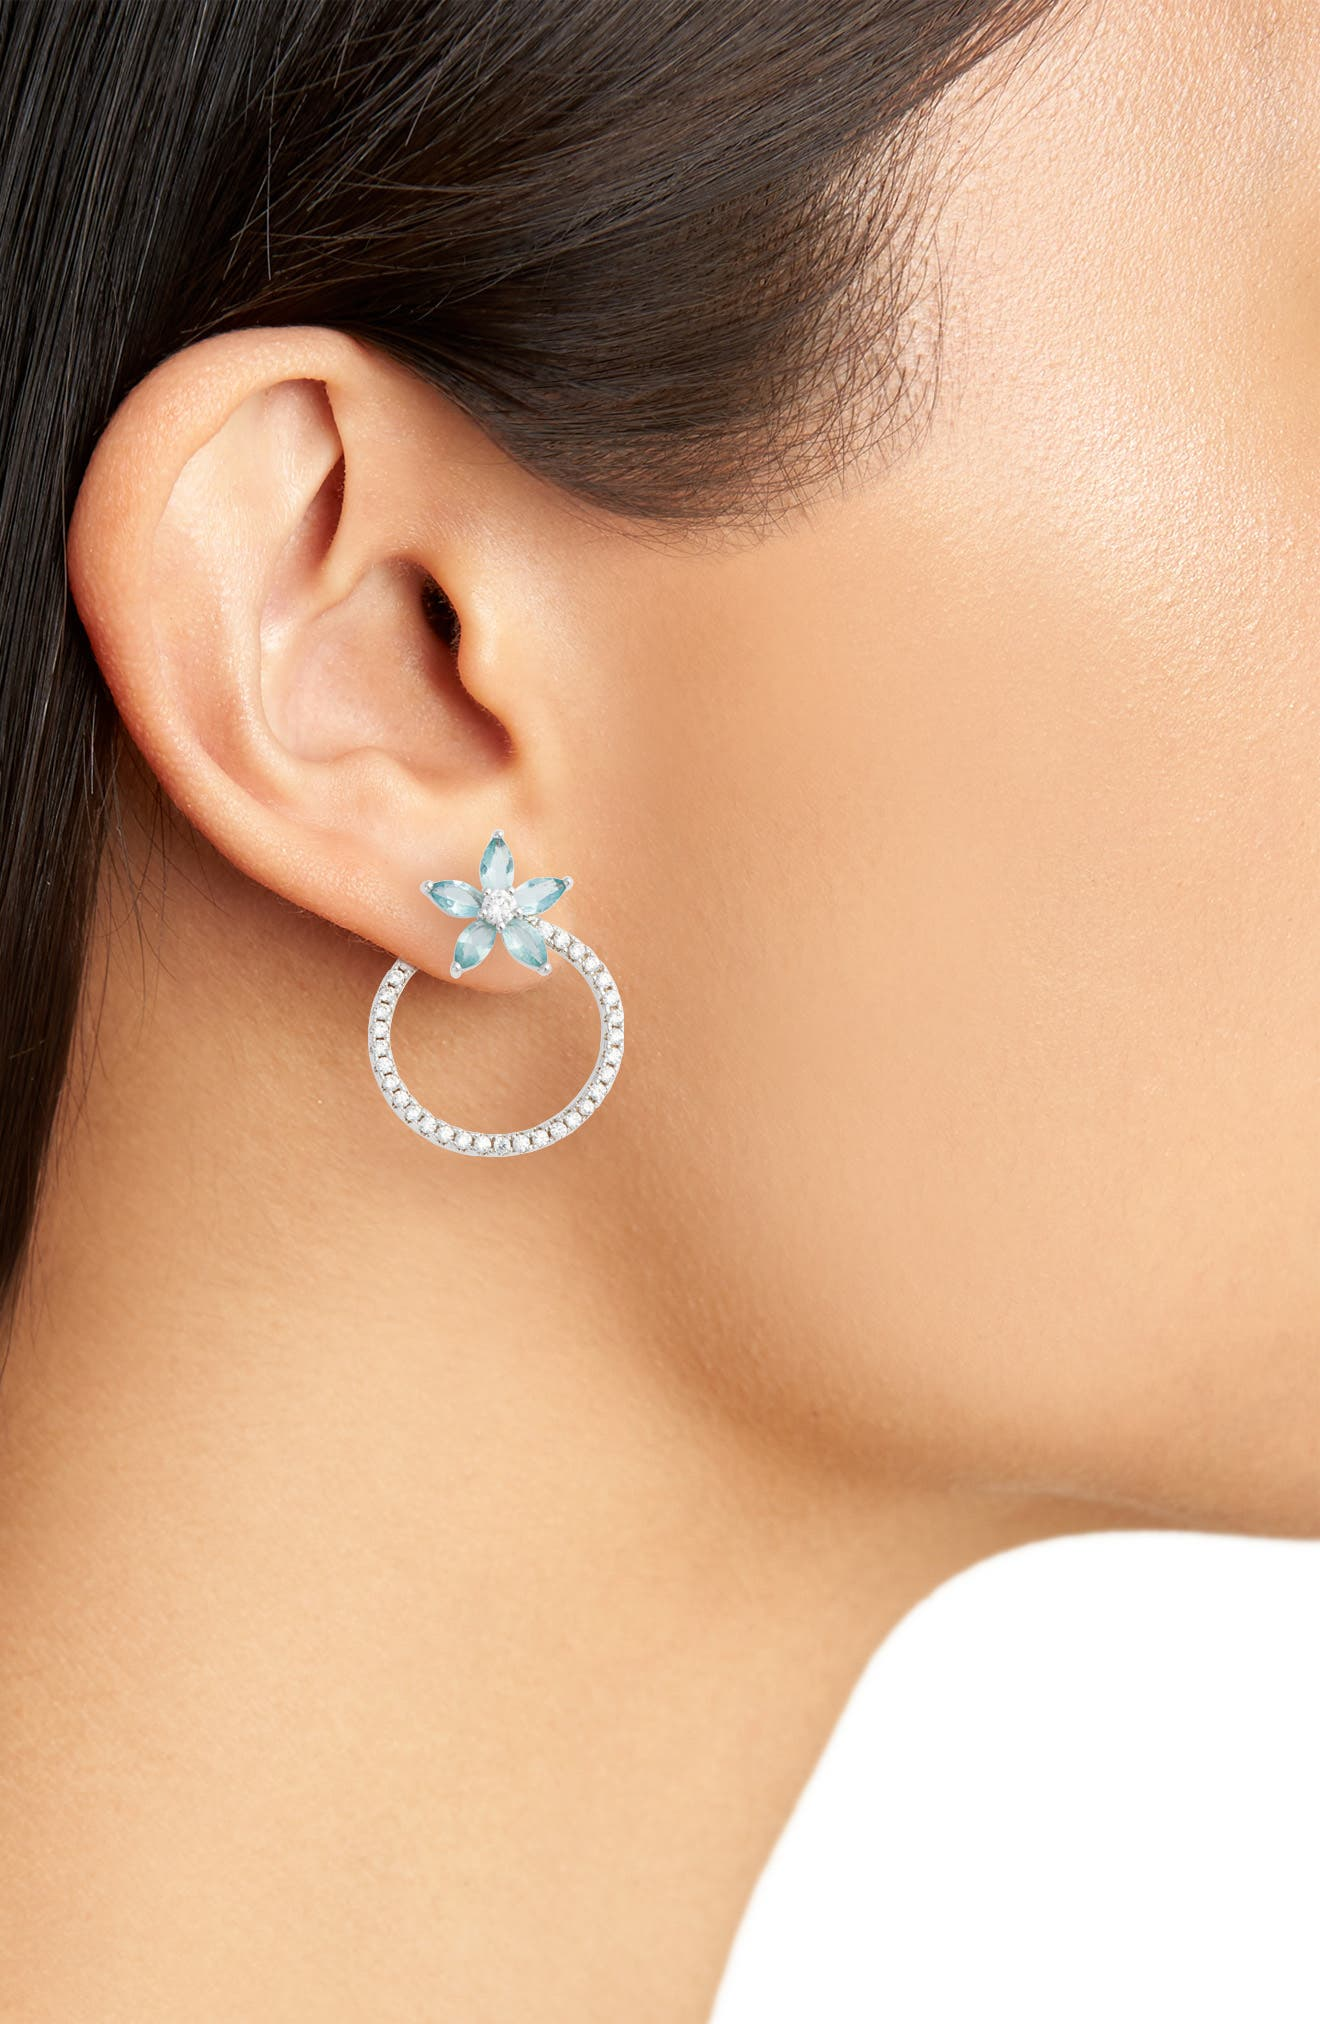 Front to Back Floral Hoop Earrings,                             Alternate thumbnail 2, color,                             SILVER/ LIGHT BLUE/ WHITE CZ